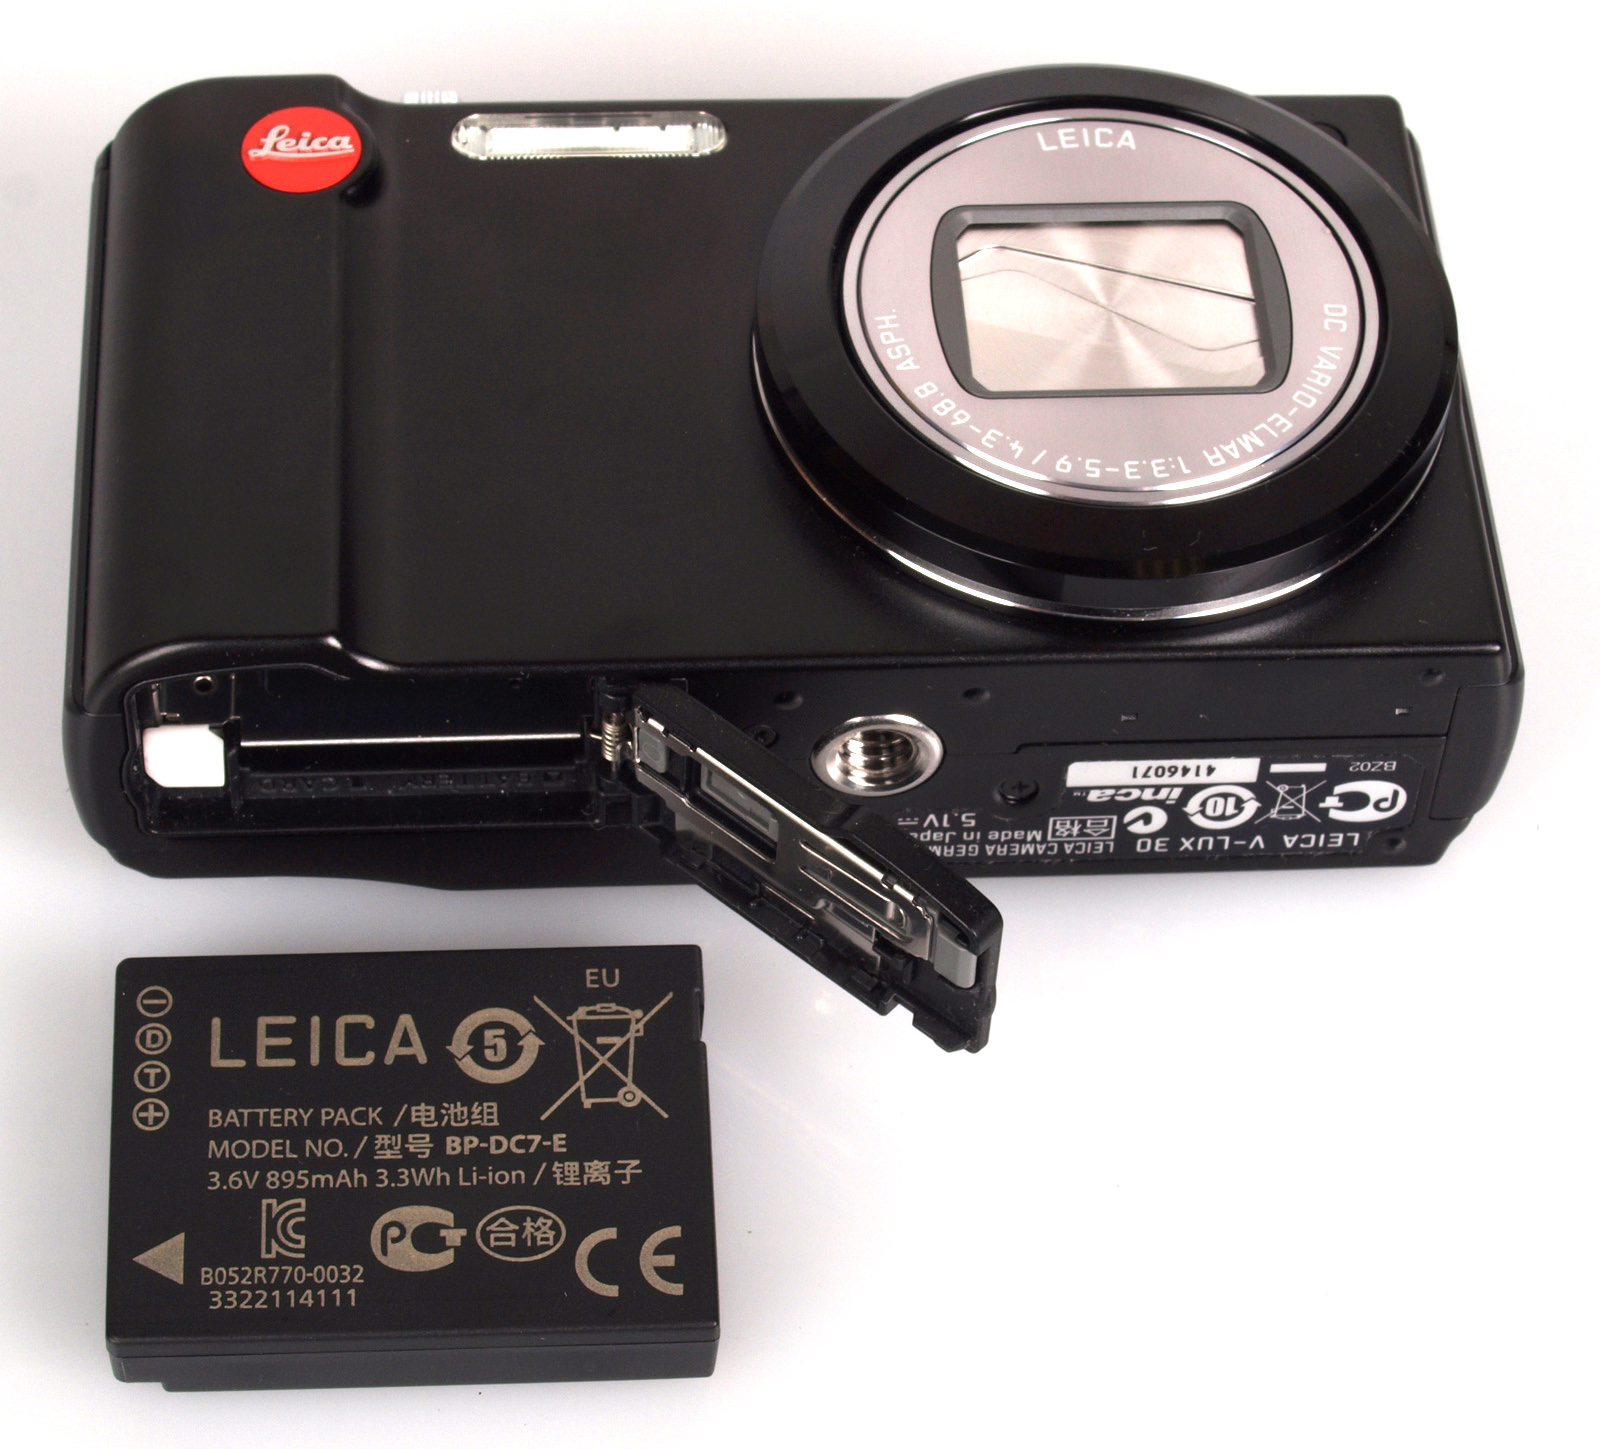 leica v lux 40 review